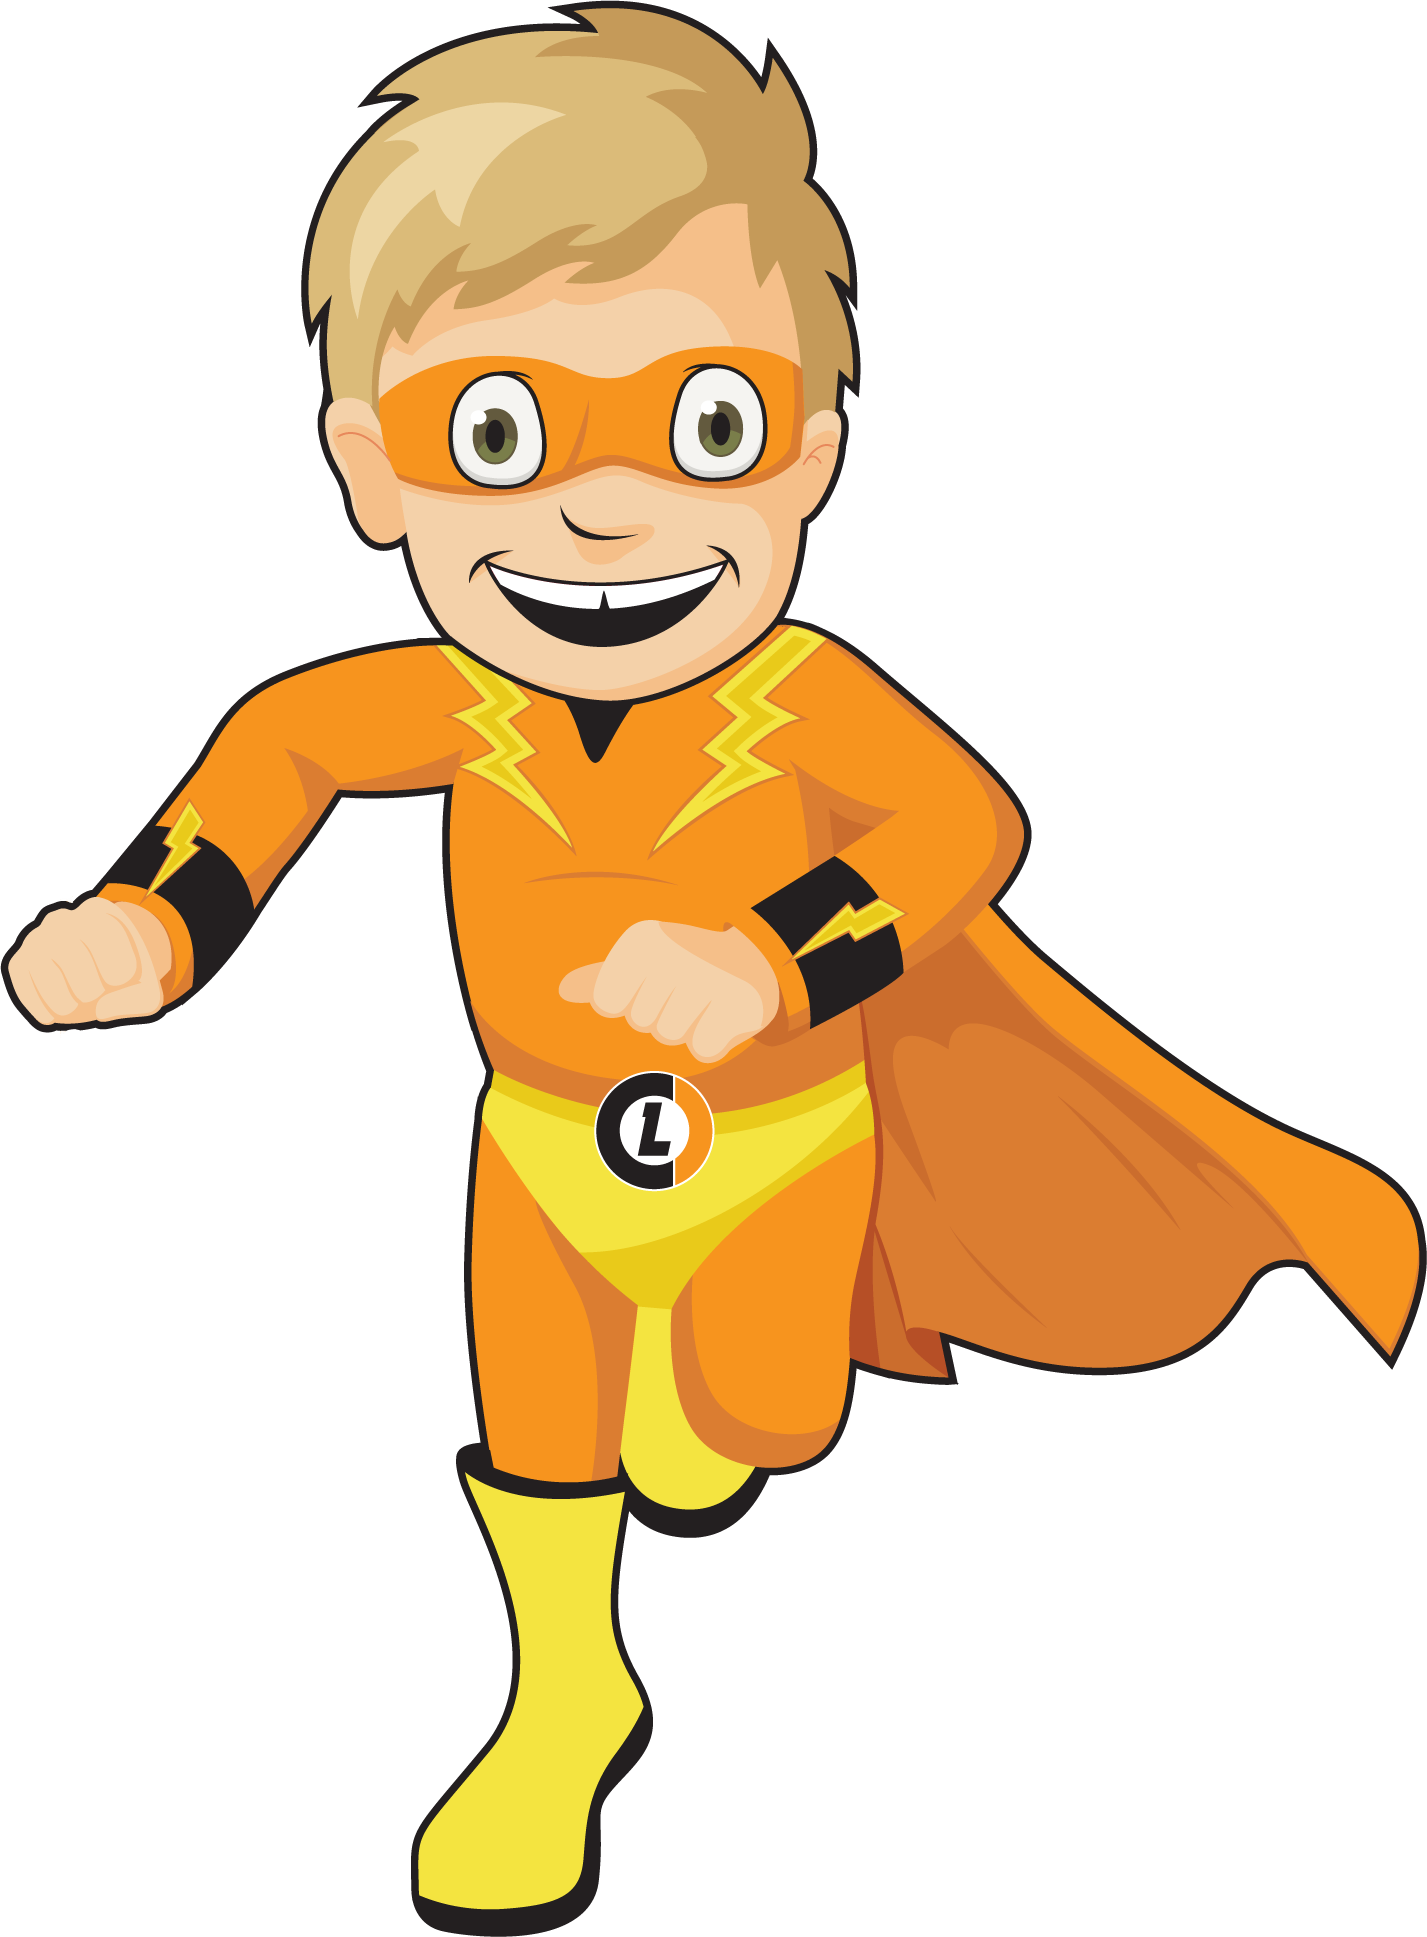 Fast clipart speed. Levi s adventure trail